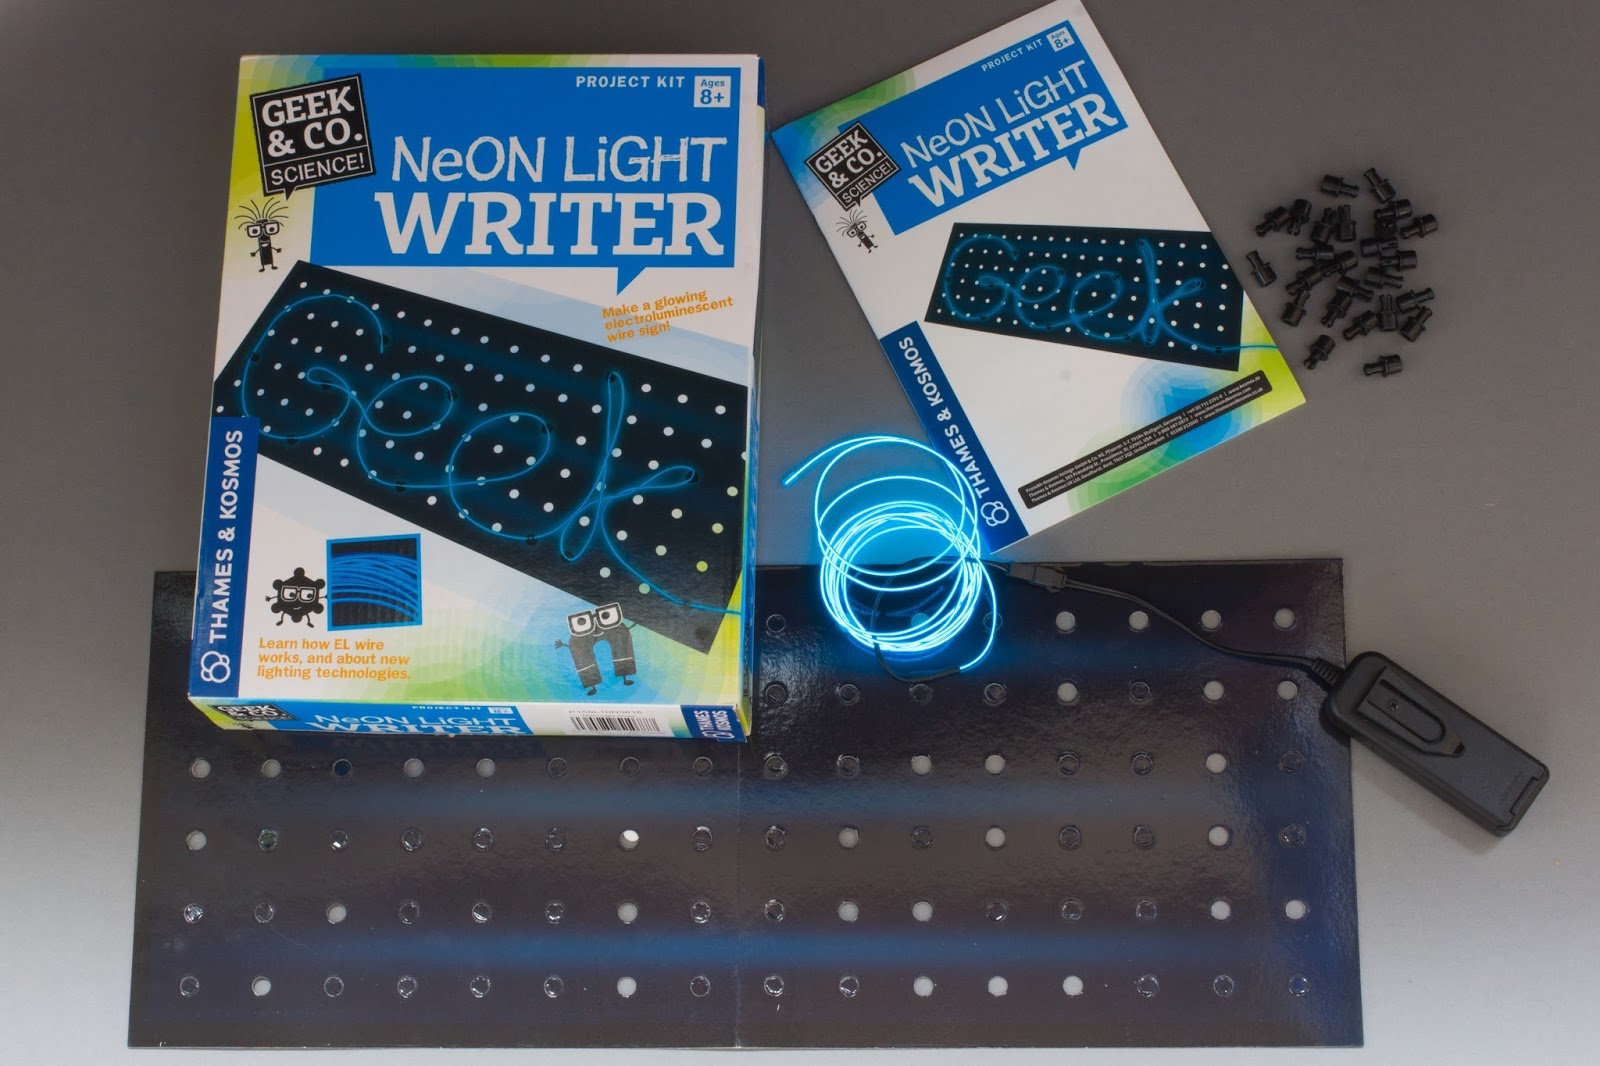 The Neon Light Writer set and the box contents including cardboard peg board, pegs and neon lights